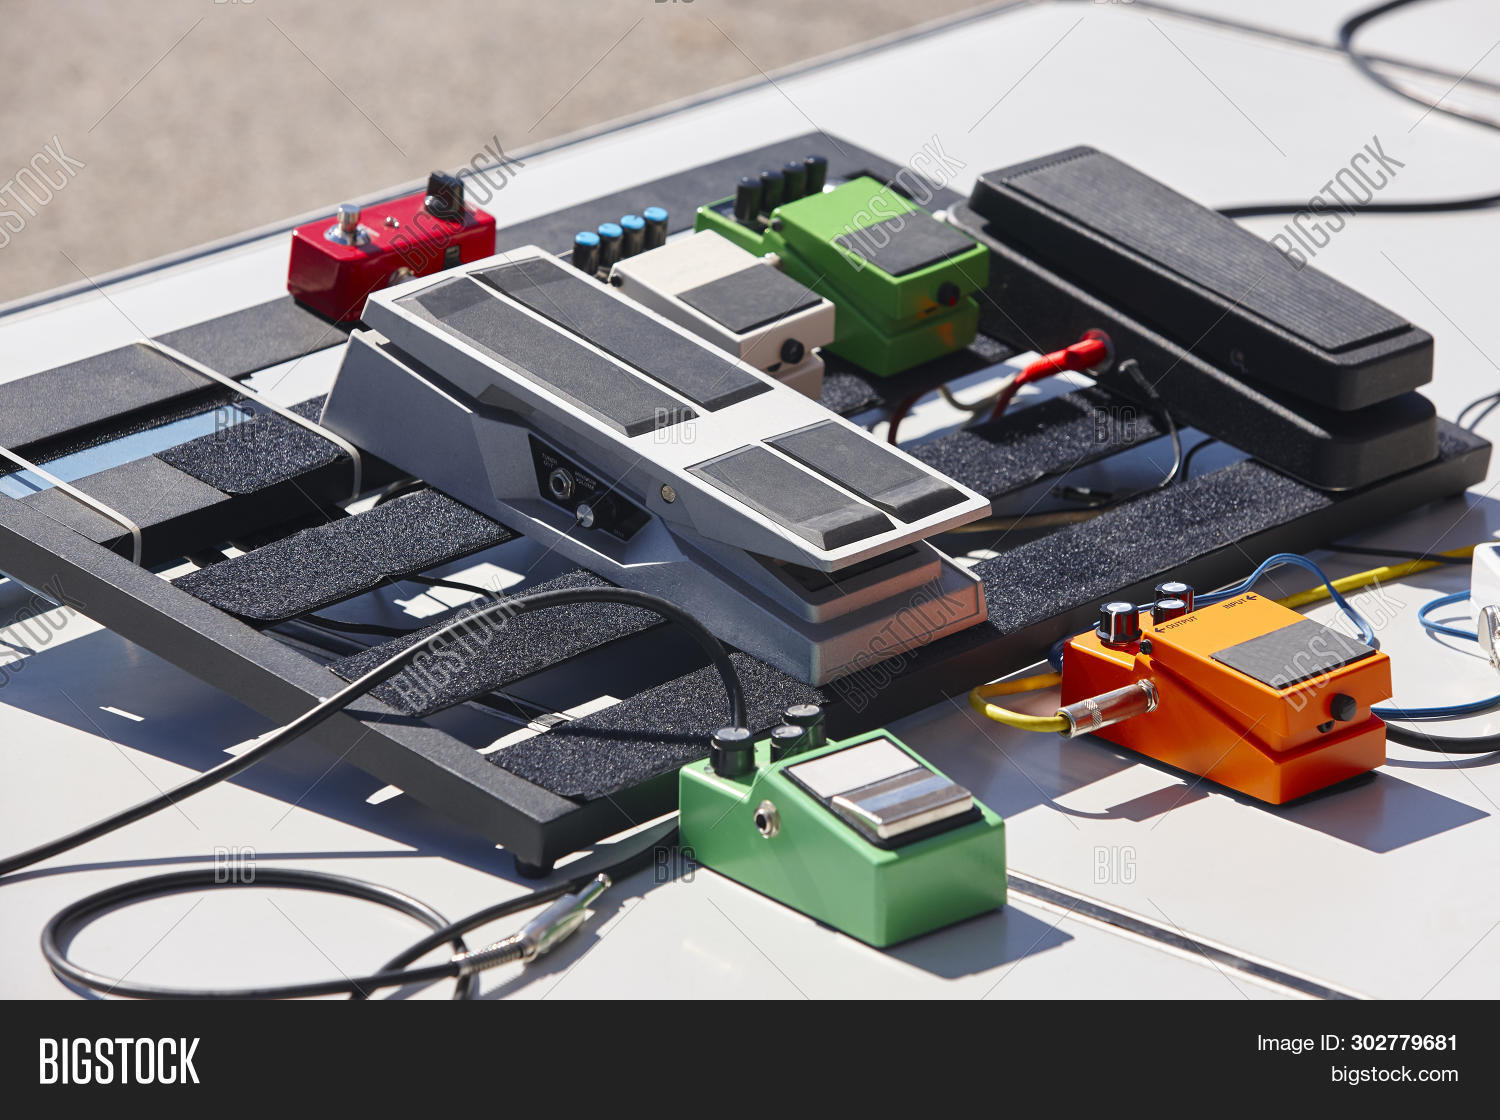 Guitar Pedal Effects Image & Photo (Free Trial) | Bigstock